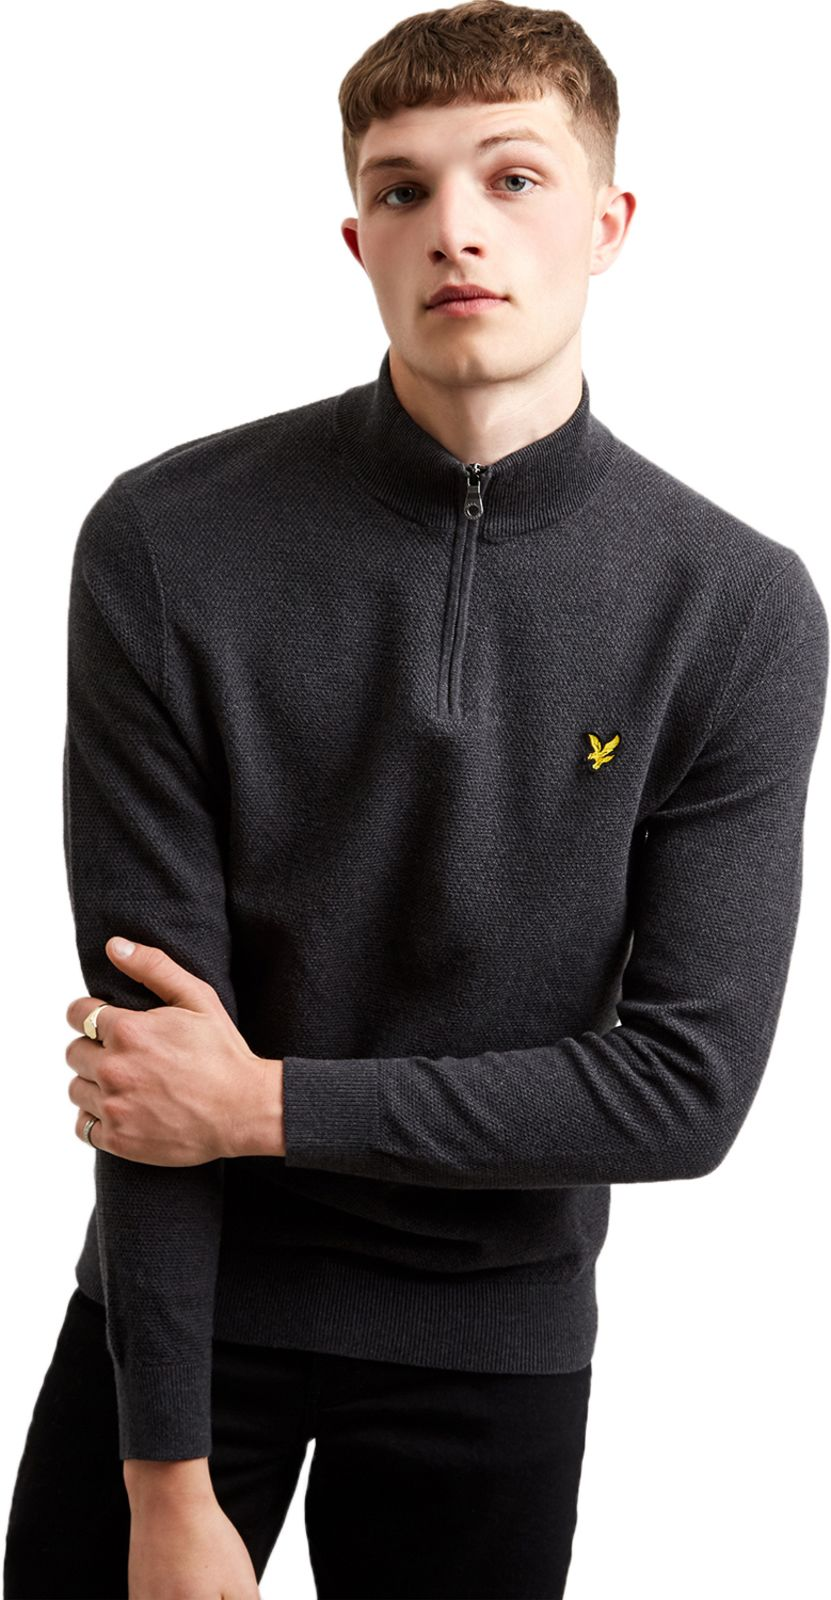 Lyle & Scott Moss Stitch 1/4 Zip Knit Jumper